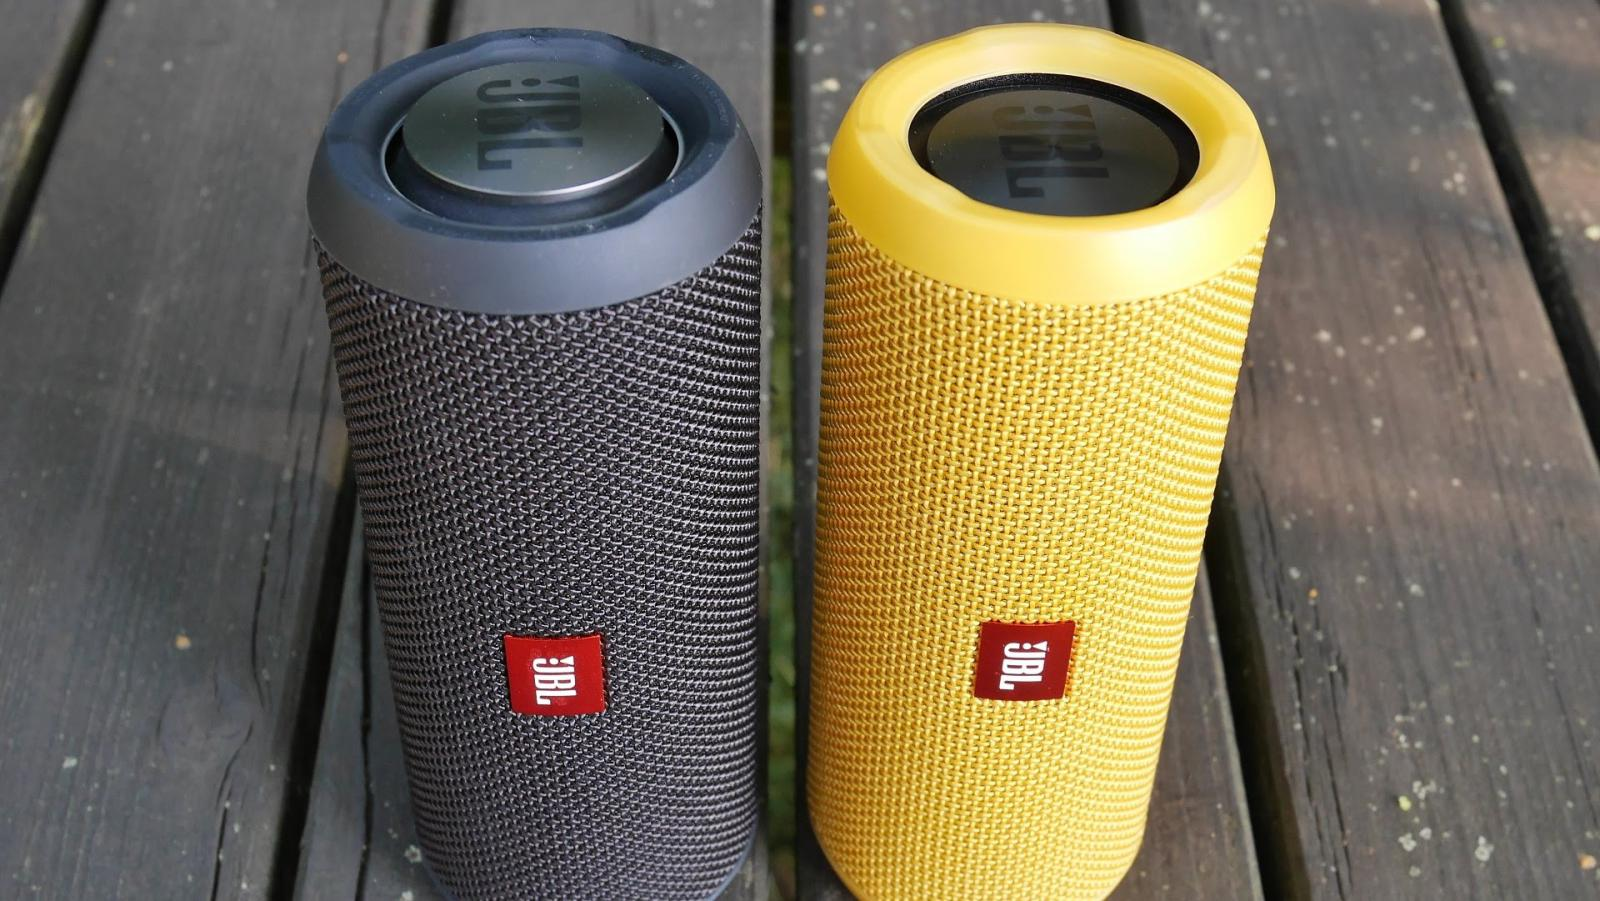 how to connect jbl flip 4 to ipad